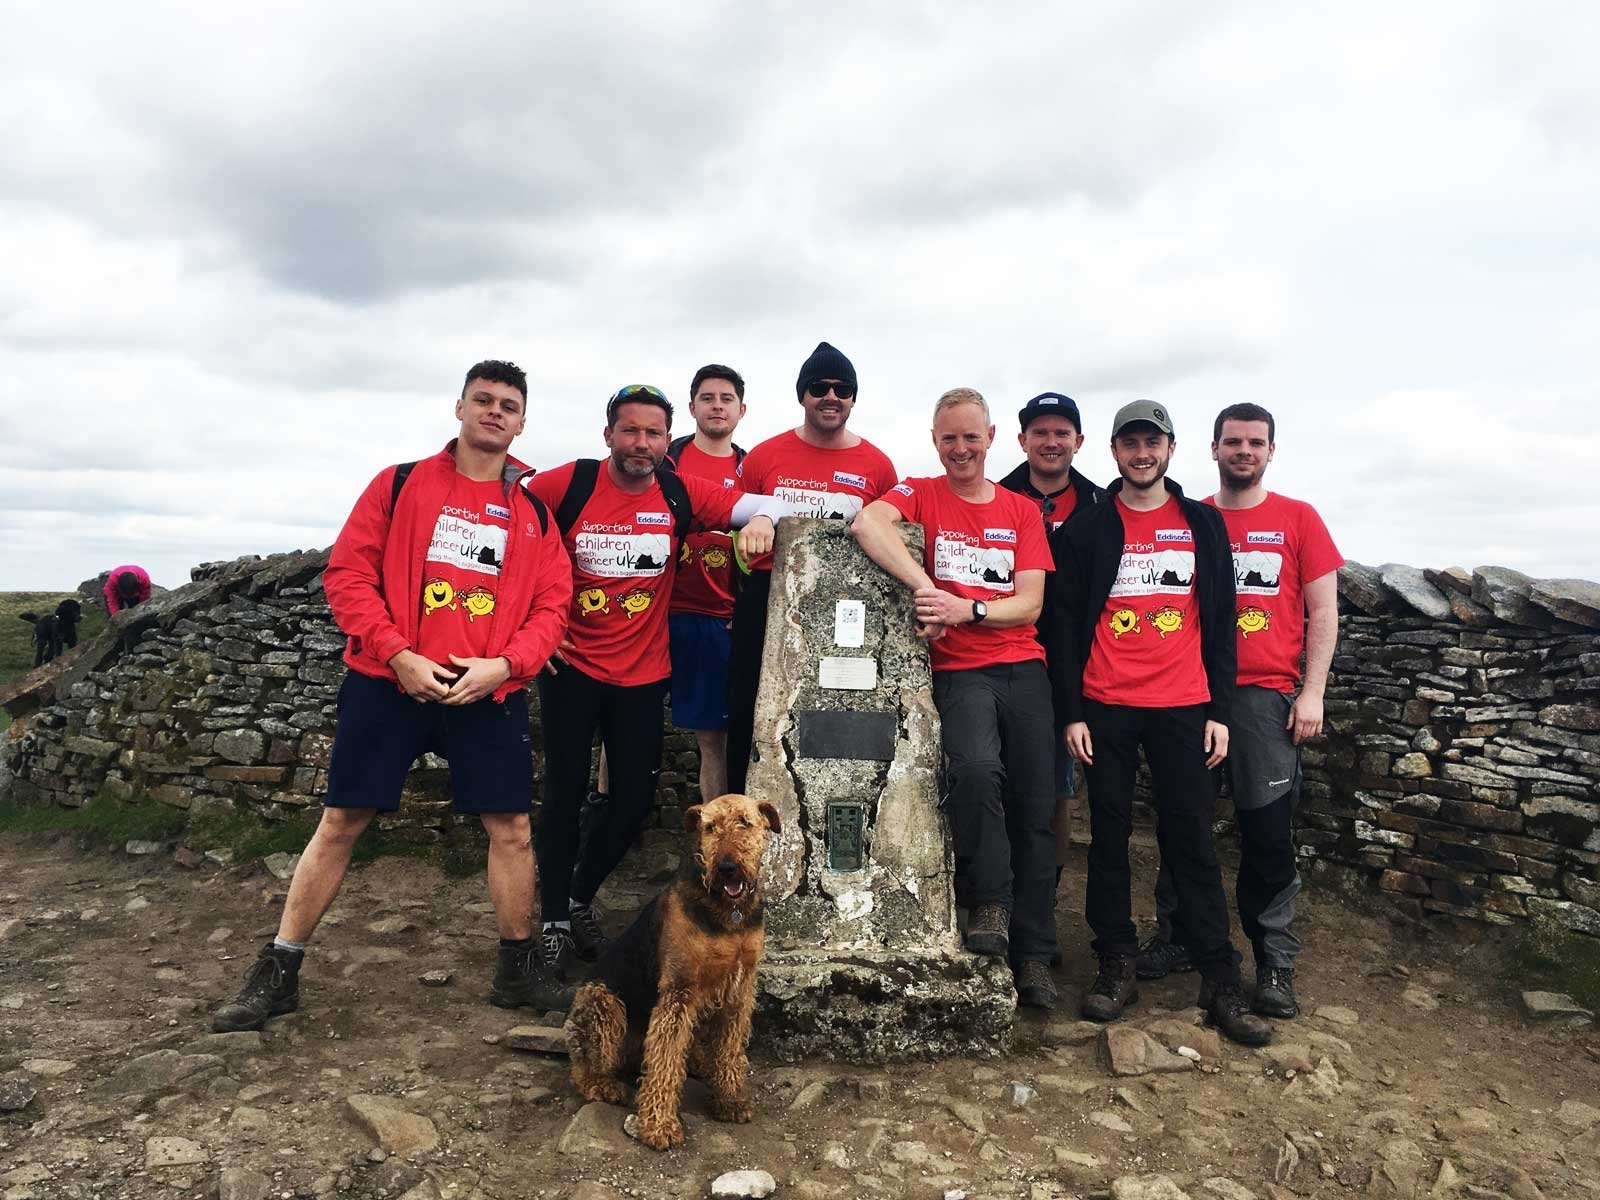 The men from Eddisons, fresh from their Three Peak challenge